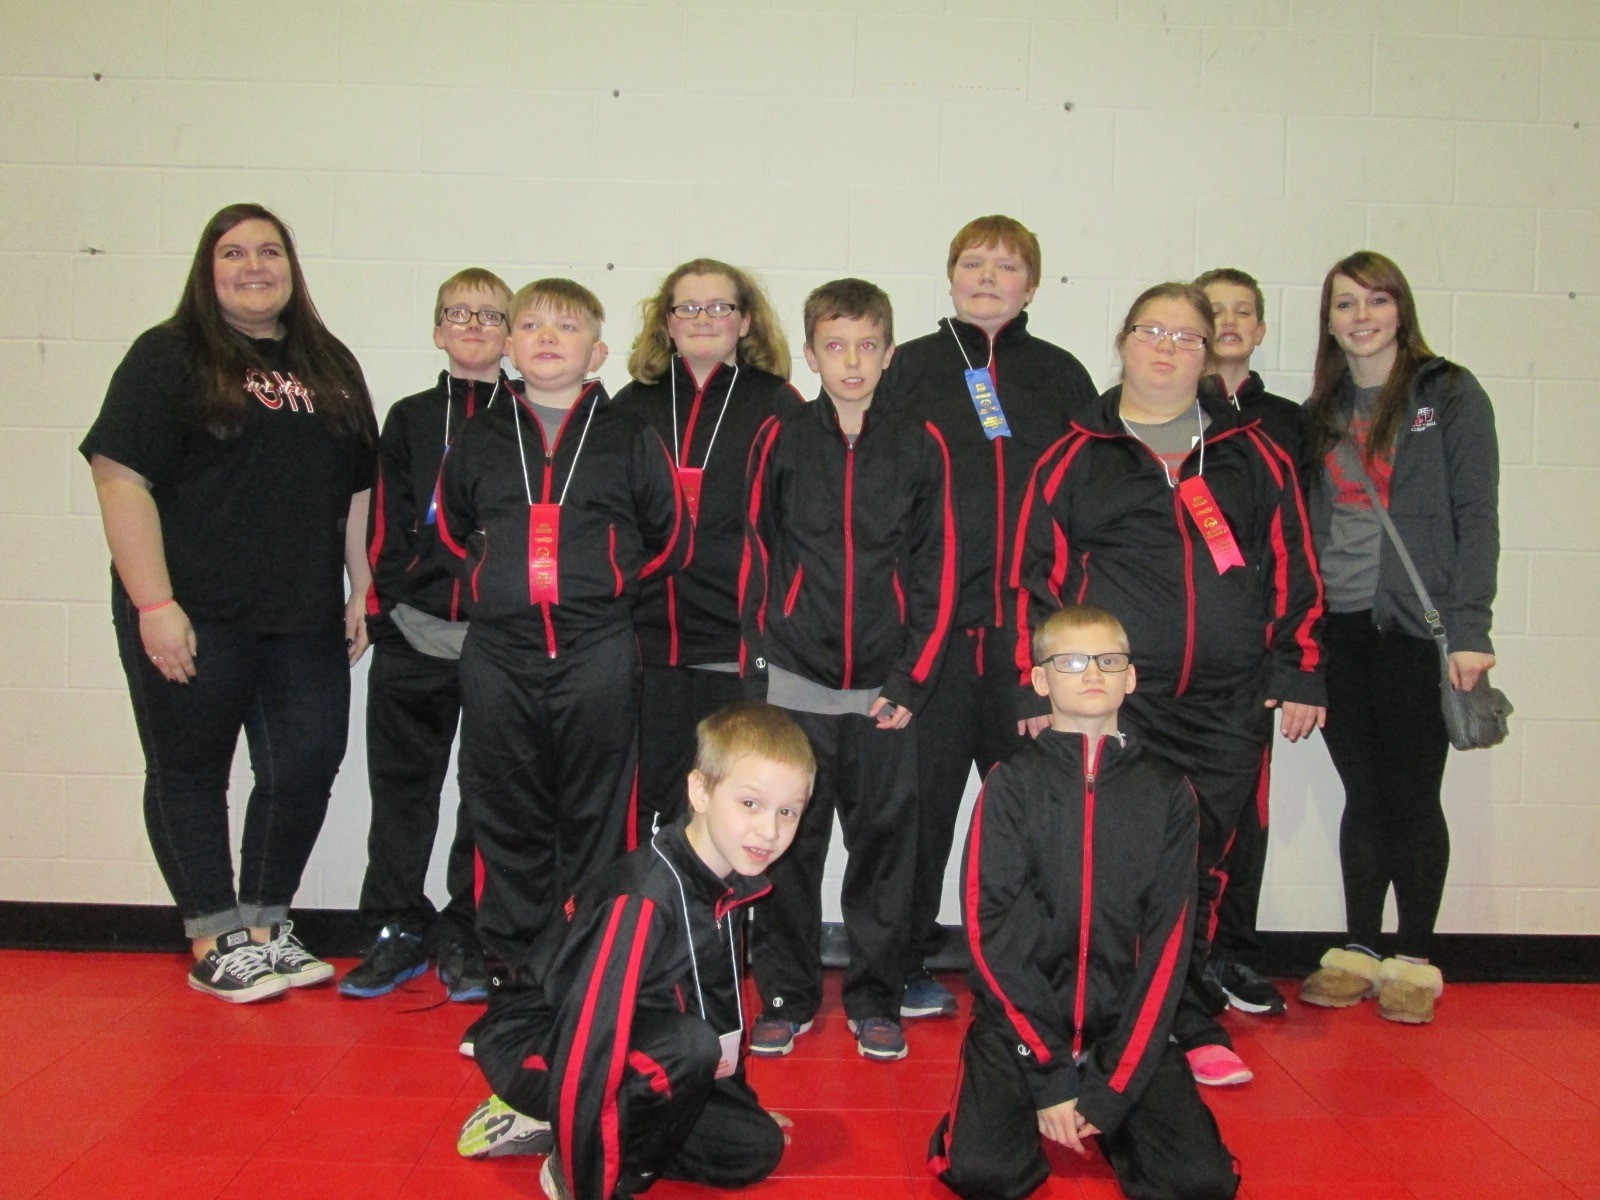 GHV Special Olympics Team and Coaches